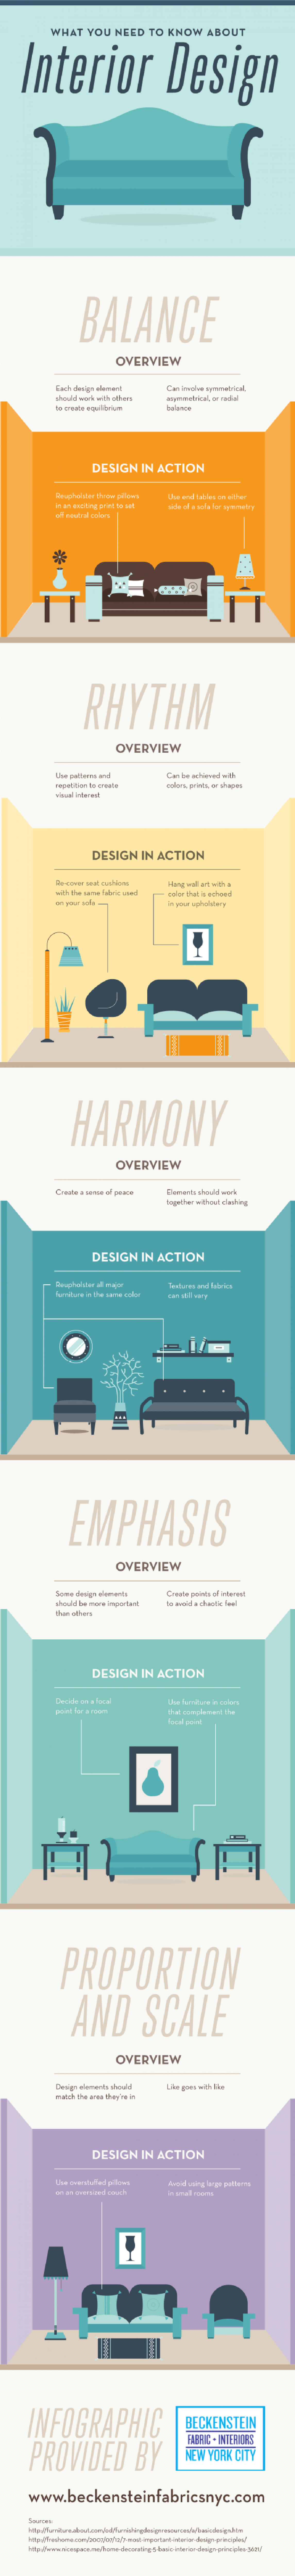 What You Need to Know about Interior Design  Infographic